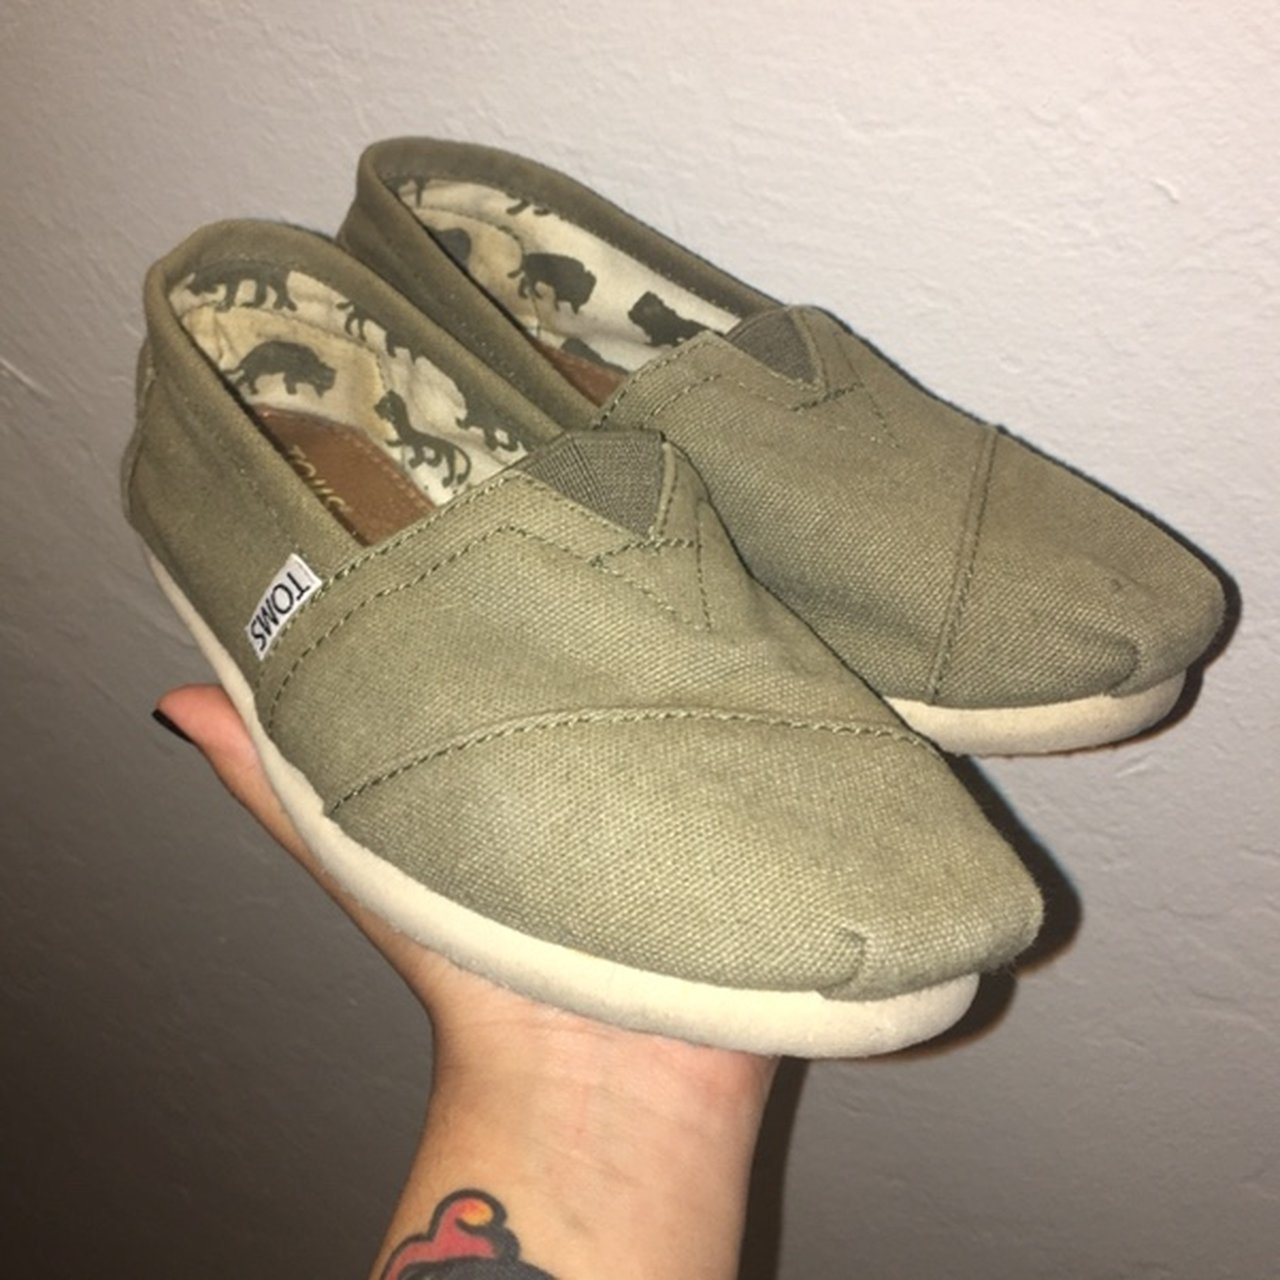 19f14a62670 olive green Toms shoes in size 5W •gently worn (practically - Depop